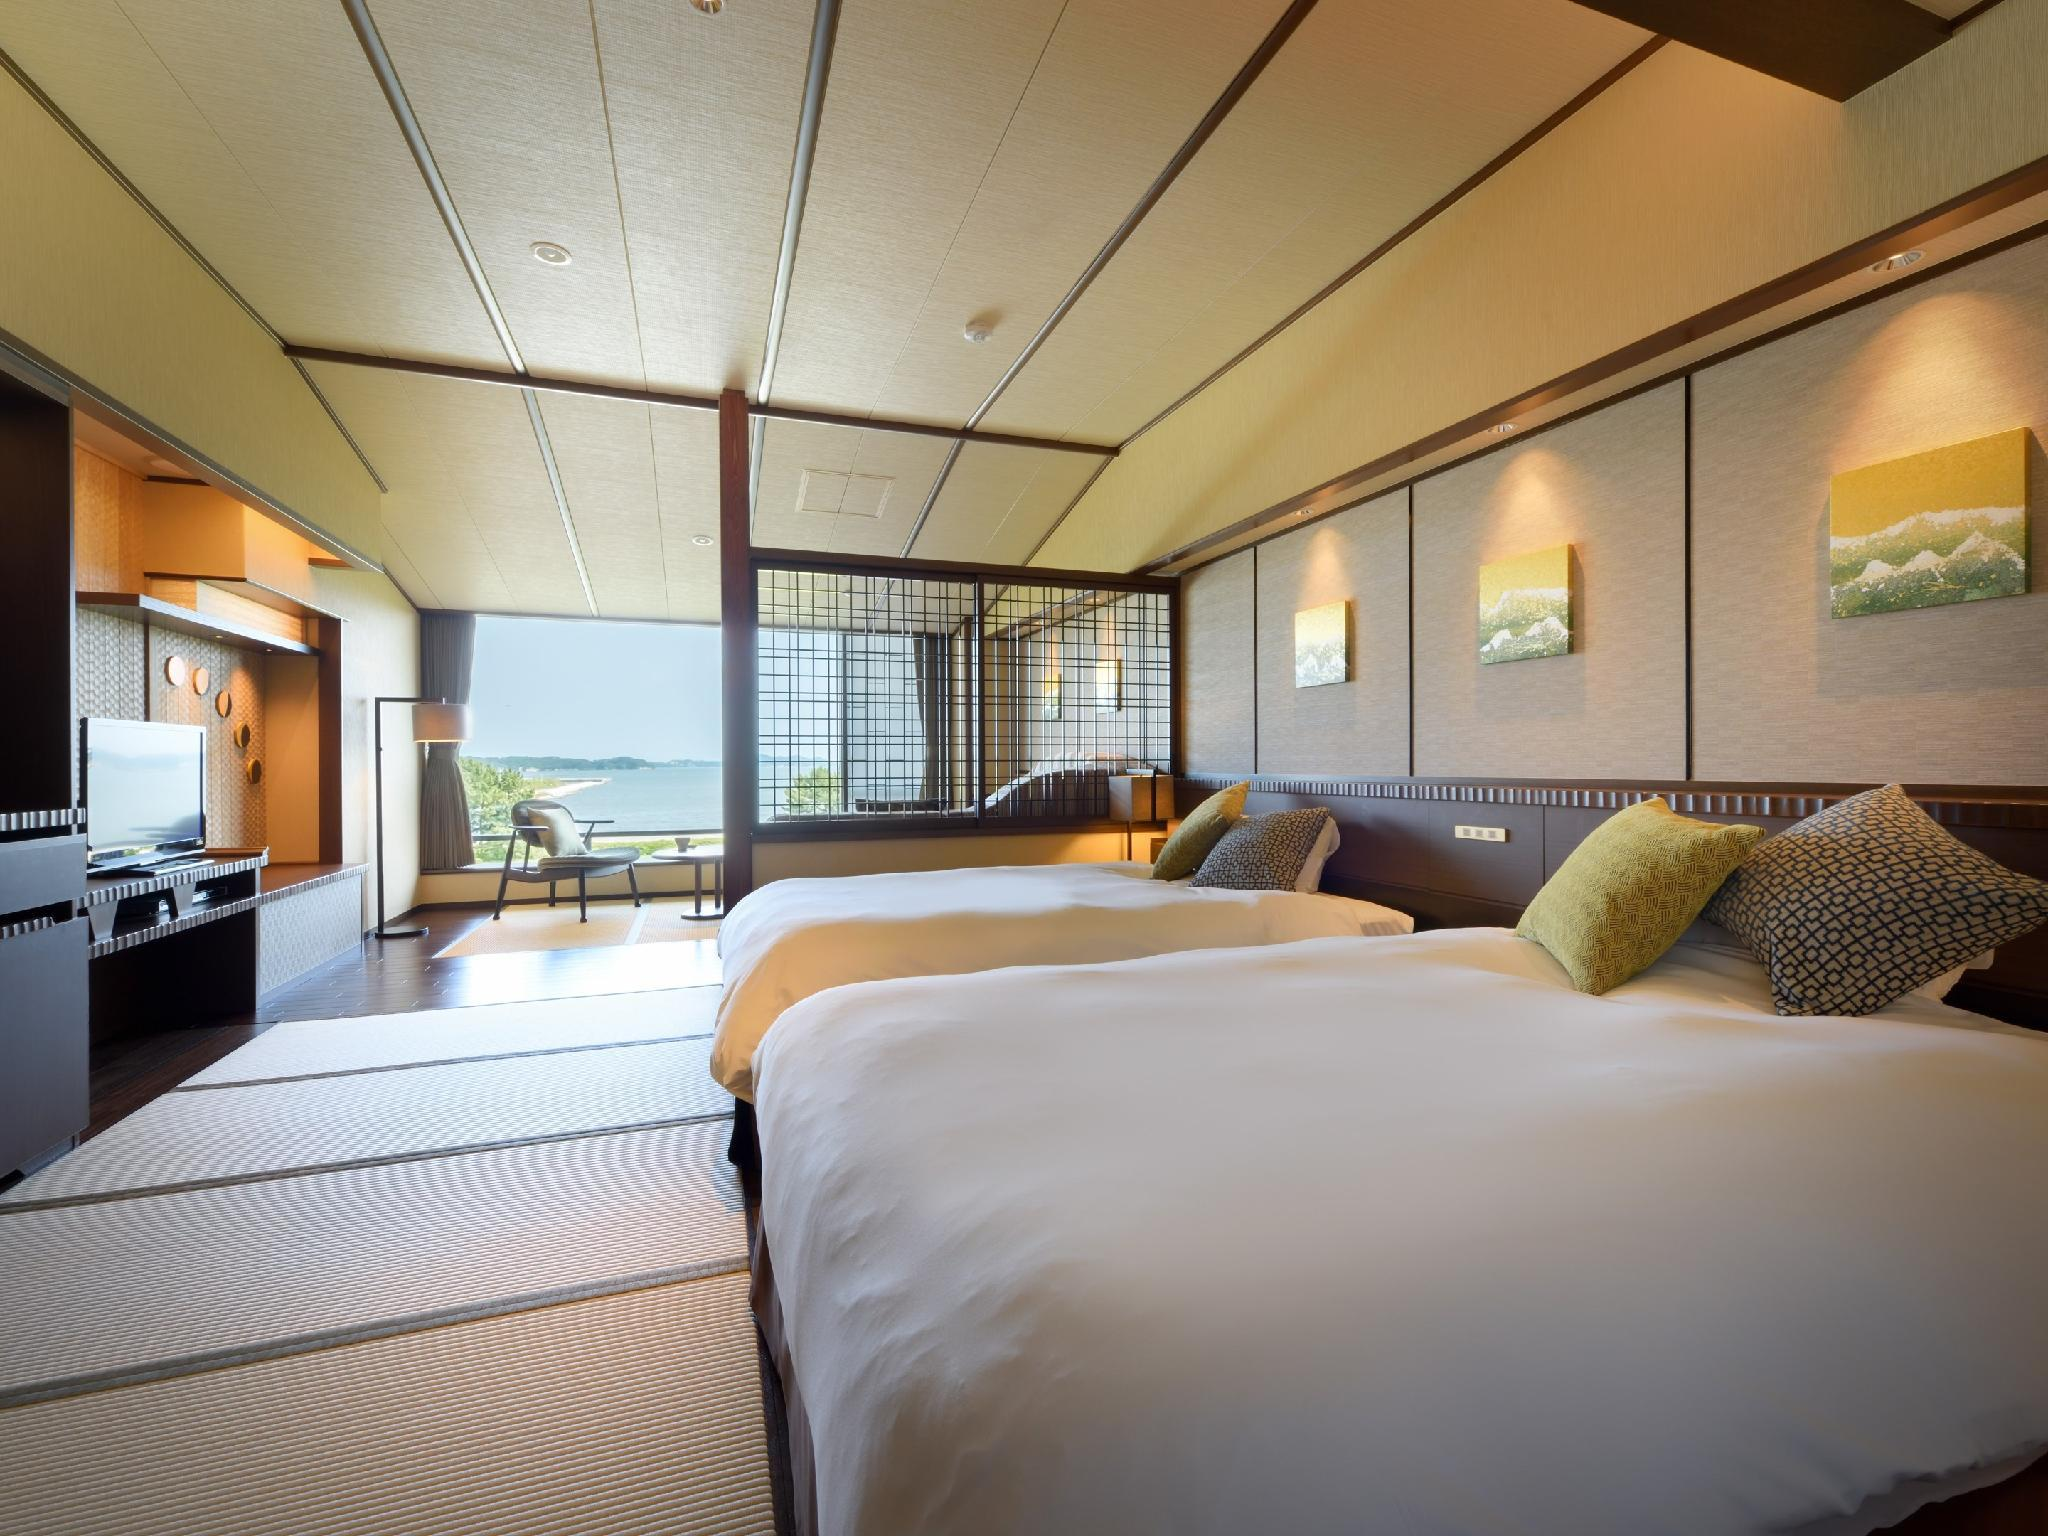 Japanese-style Room with Beds*Has shower, no bath in room